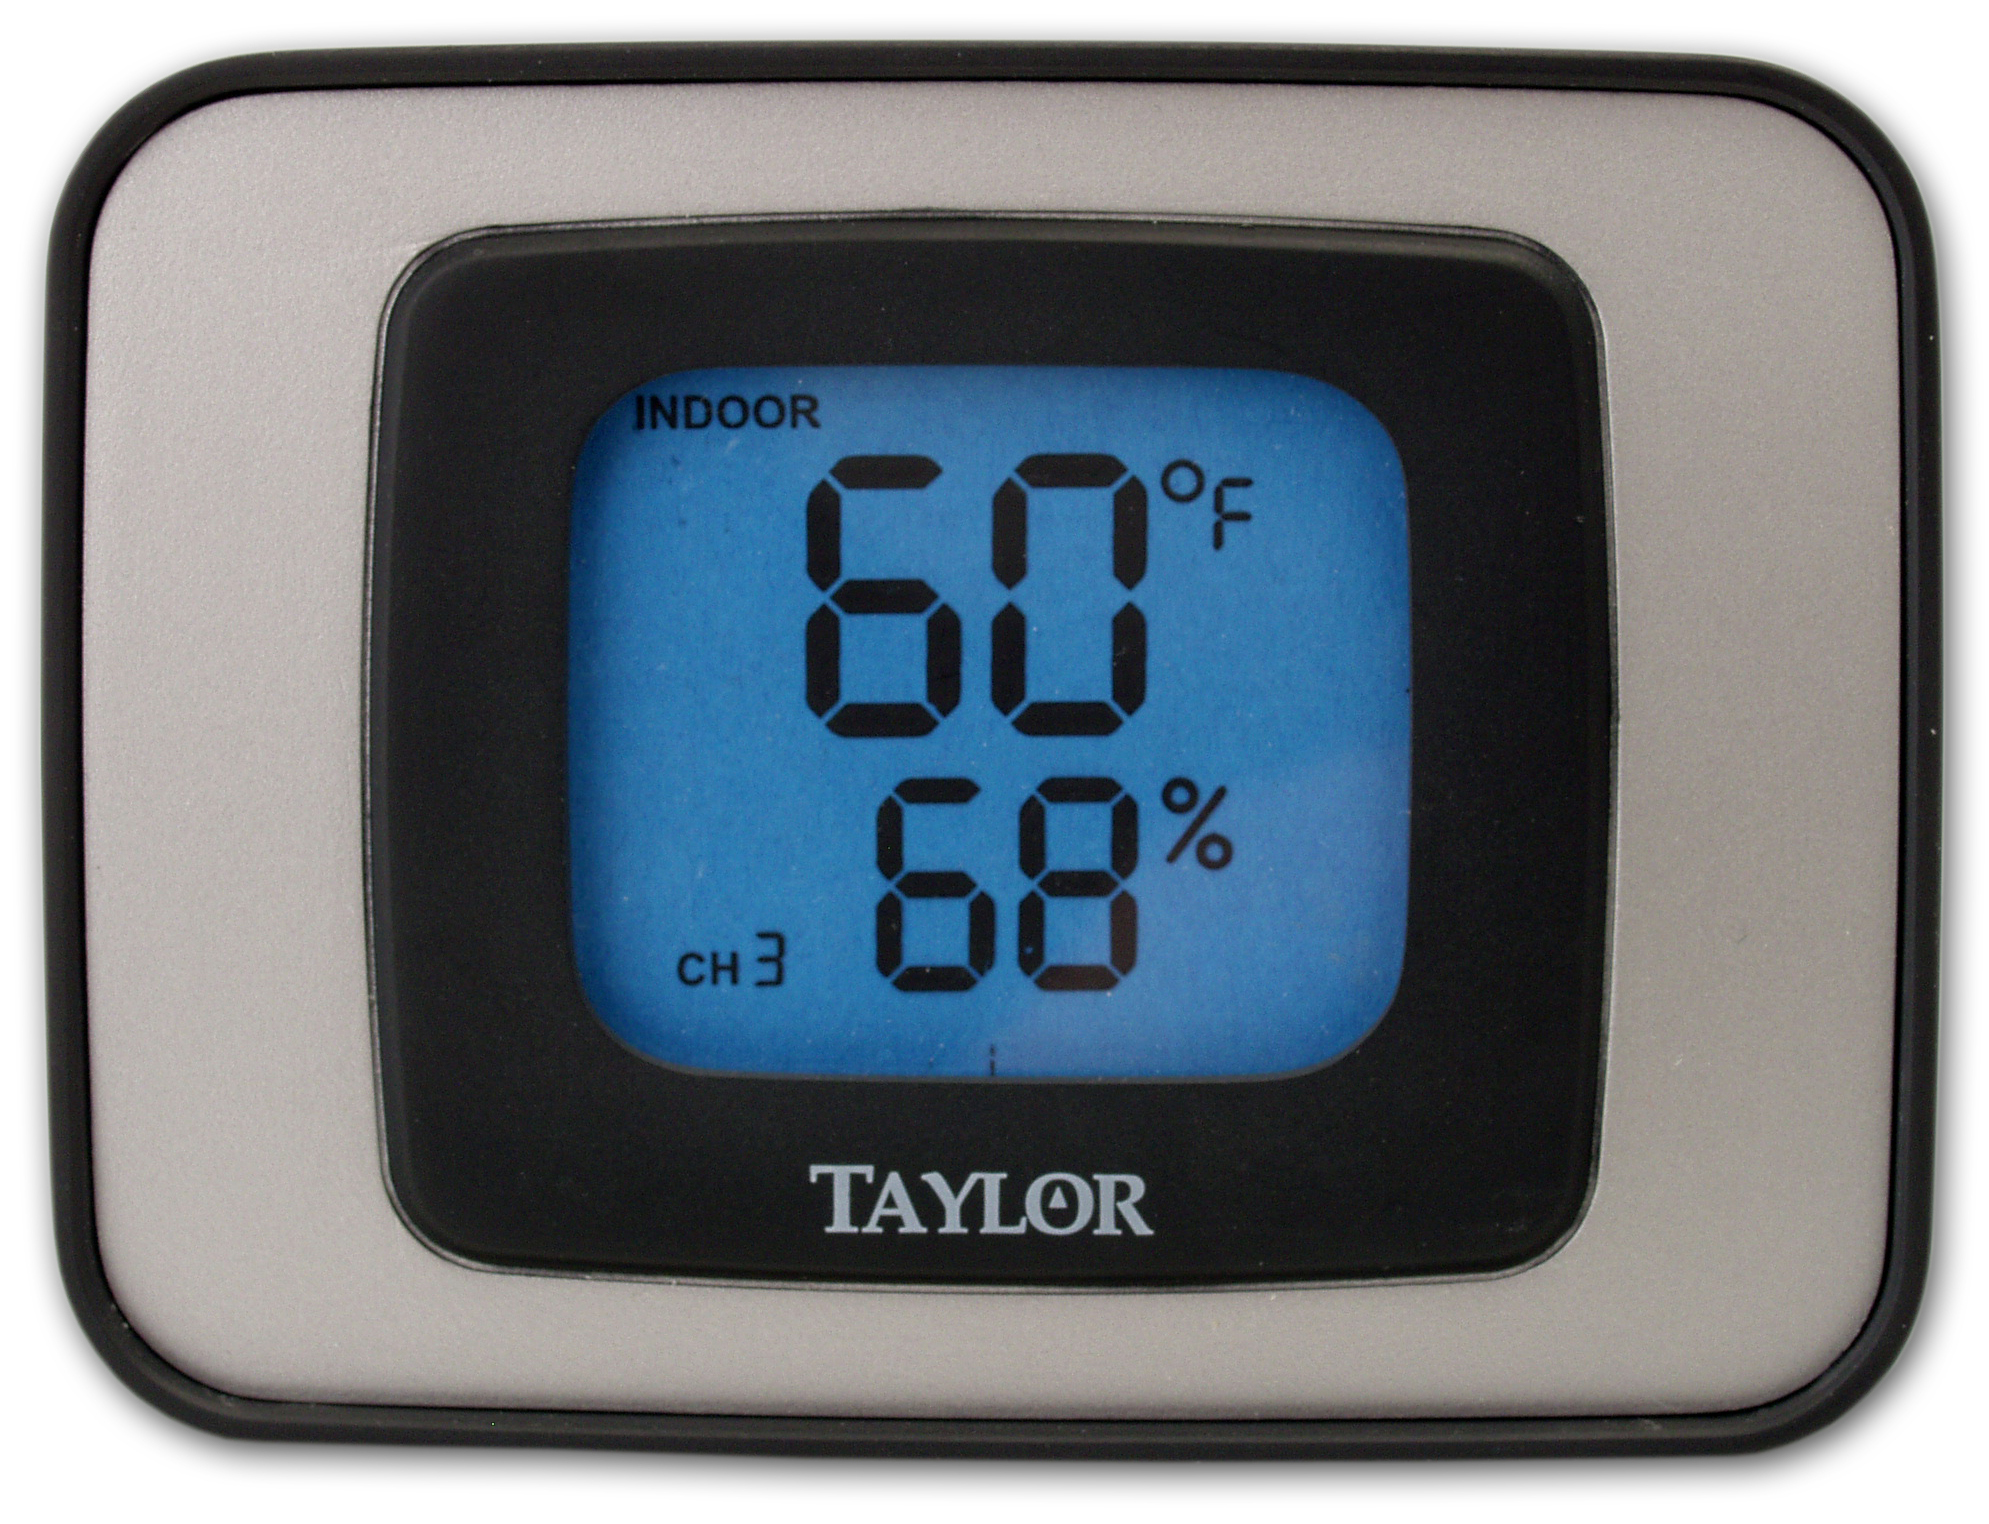 Taylor Indoor/Outdoor Digital Thermometer & Hygrometer